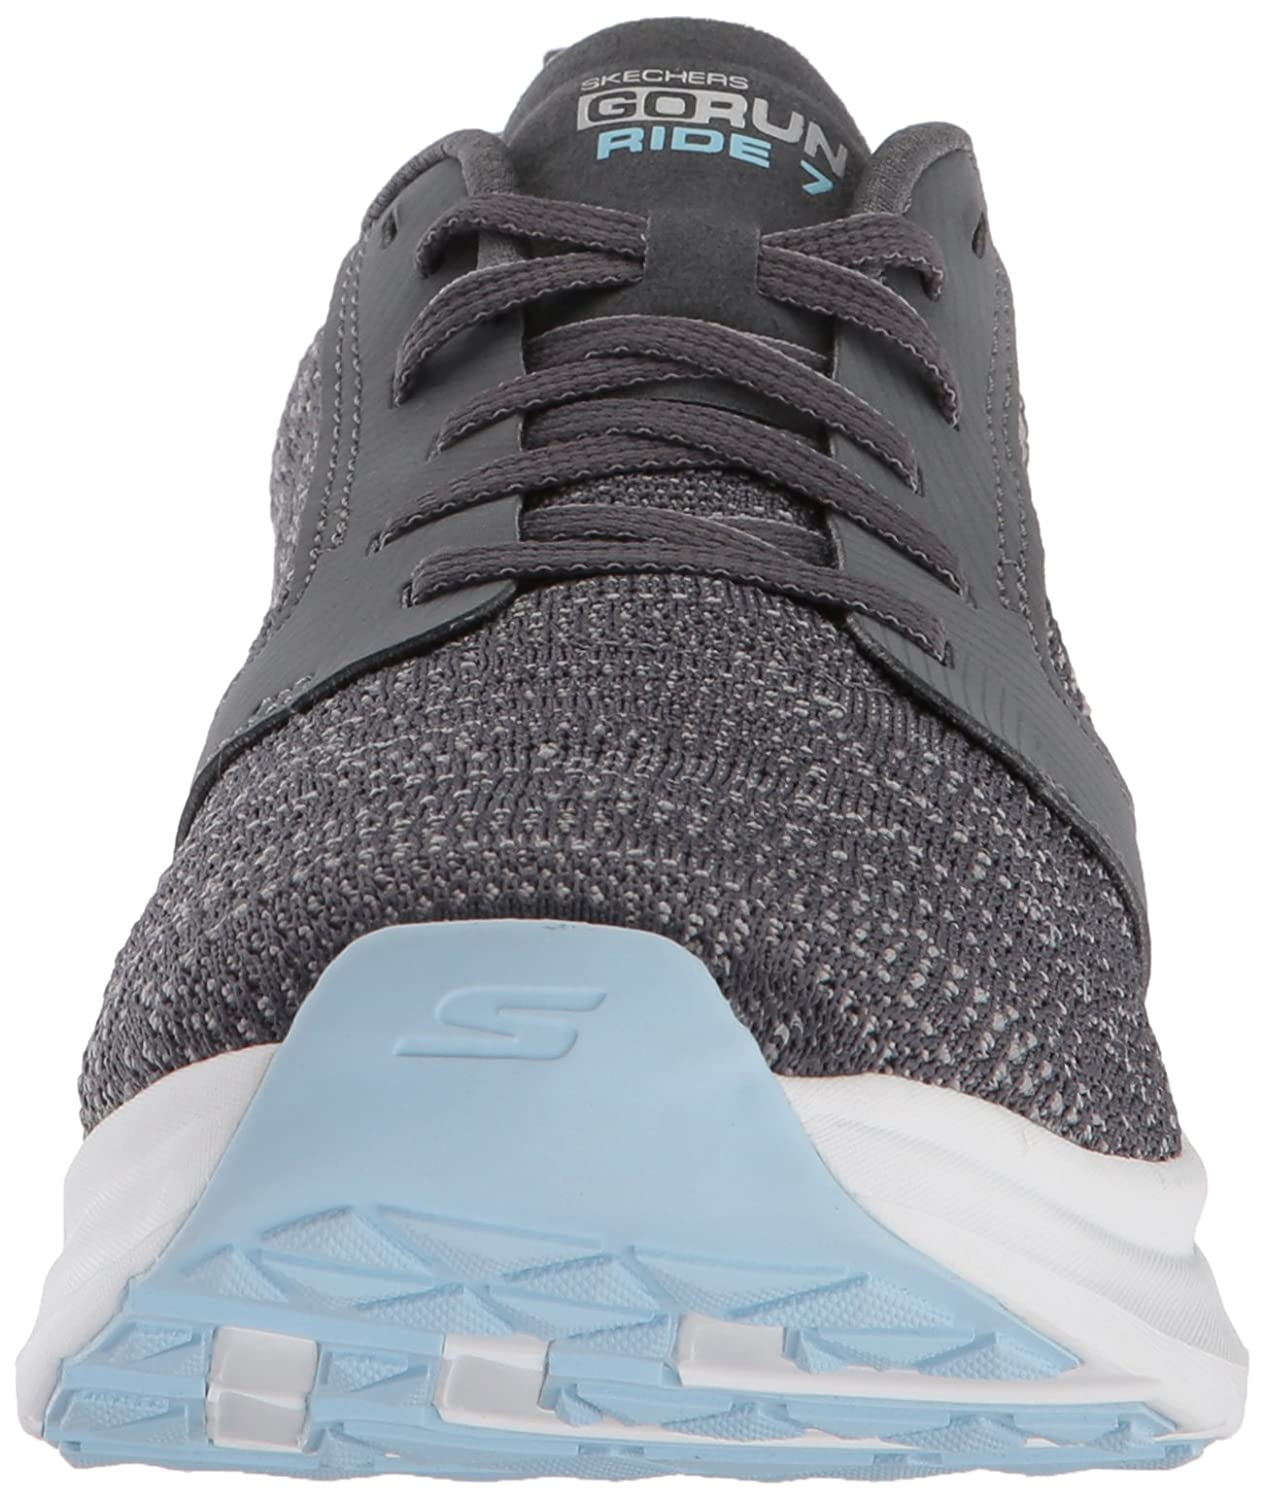 Skechers Performance Damen Go Run Ride schwarz 7 Hallenschuhe, schwarz Ride Grau (Charcoal/Blau) 2455ec